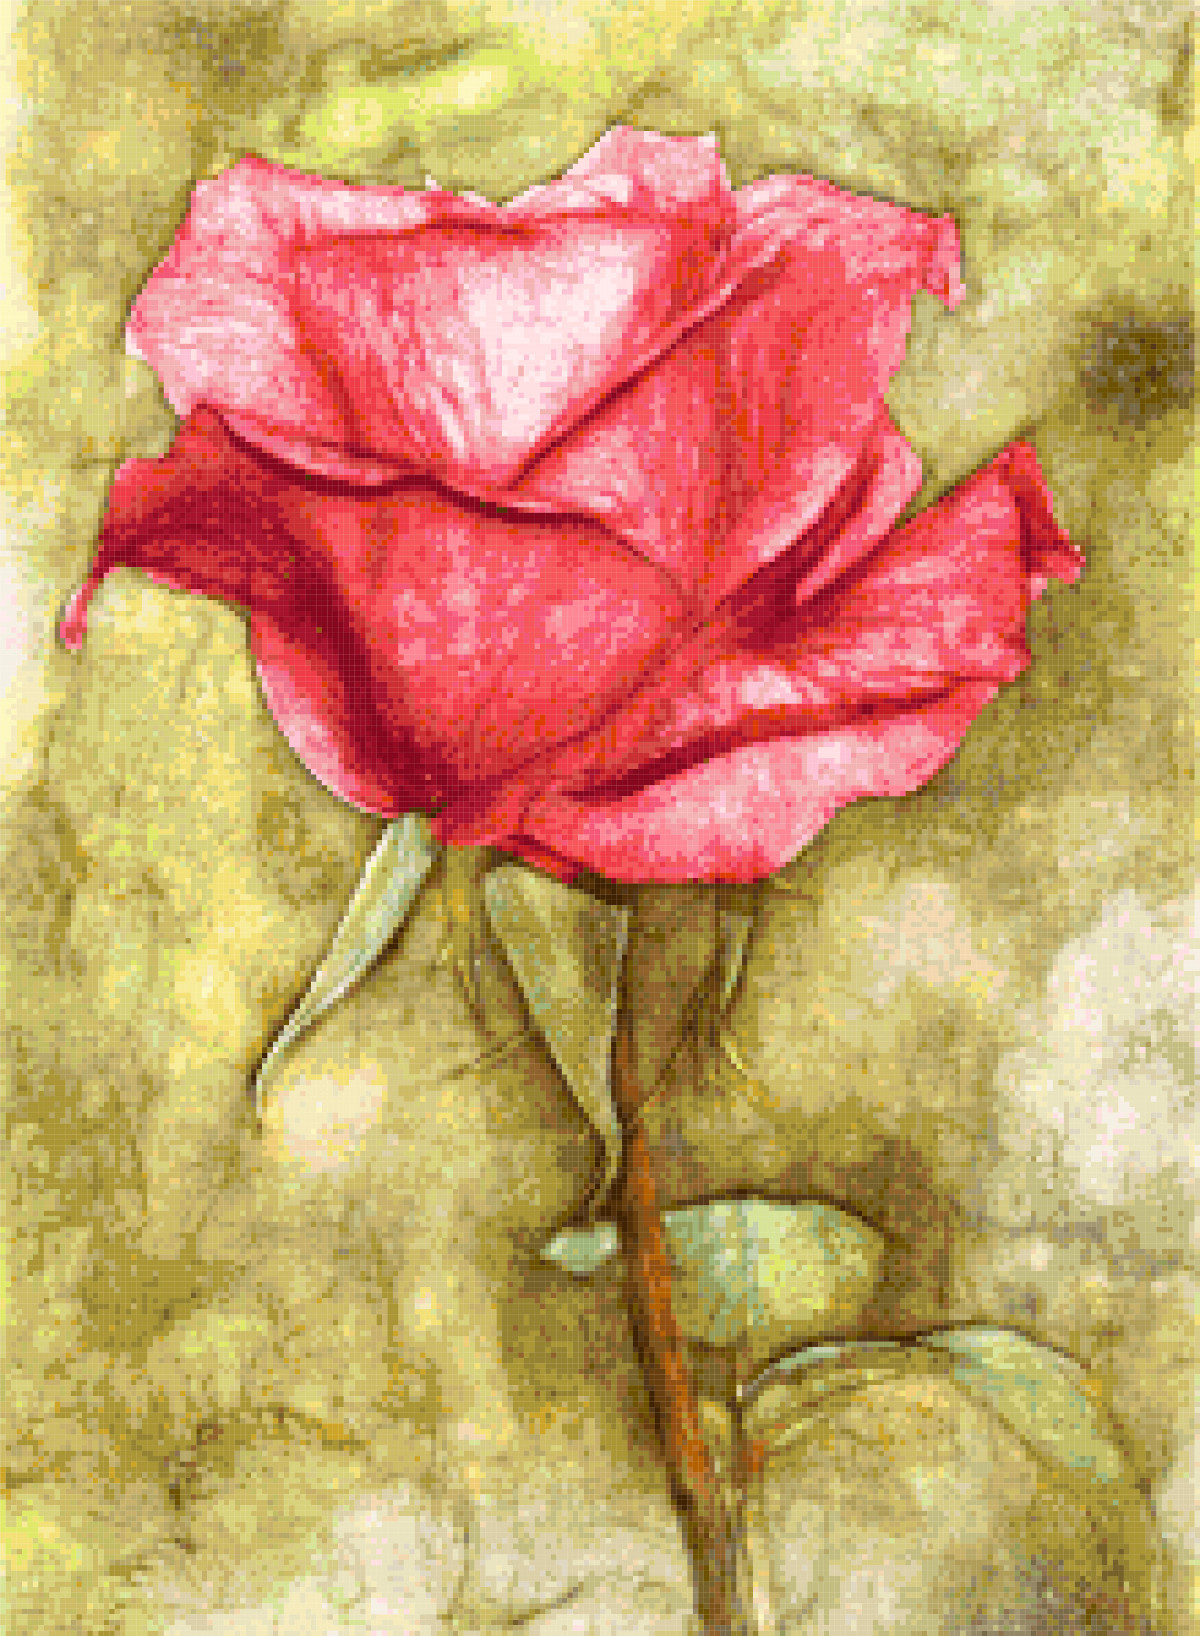 fantasy rose cross stitch image